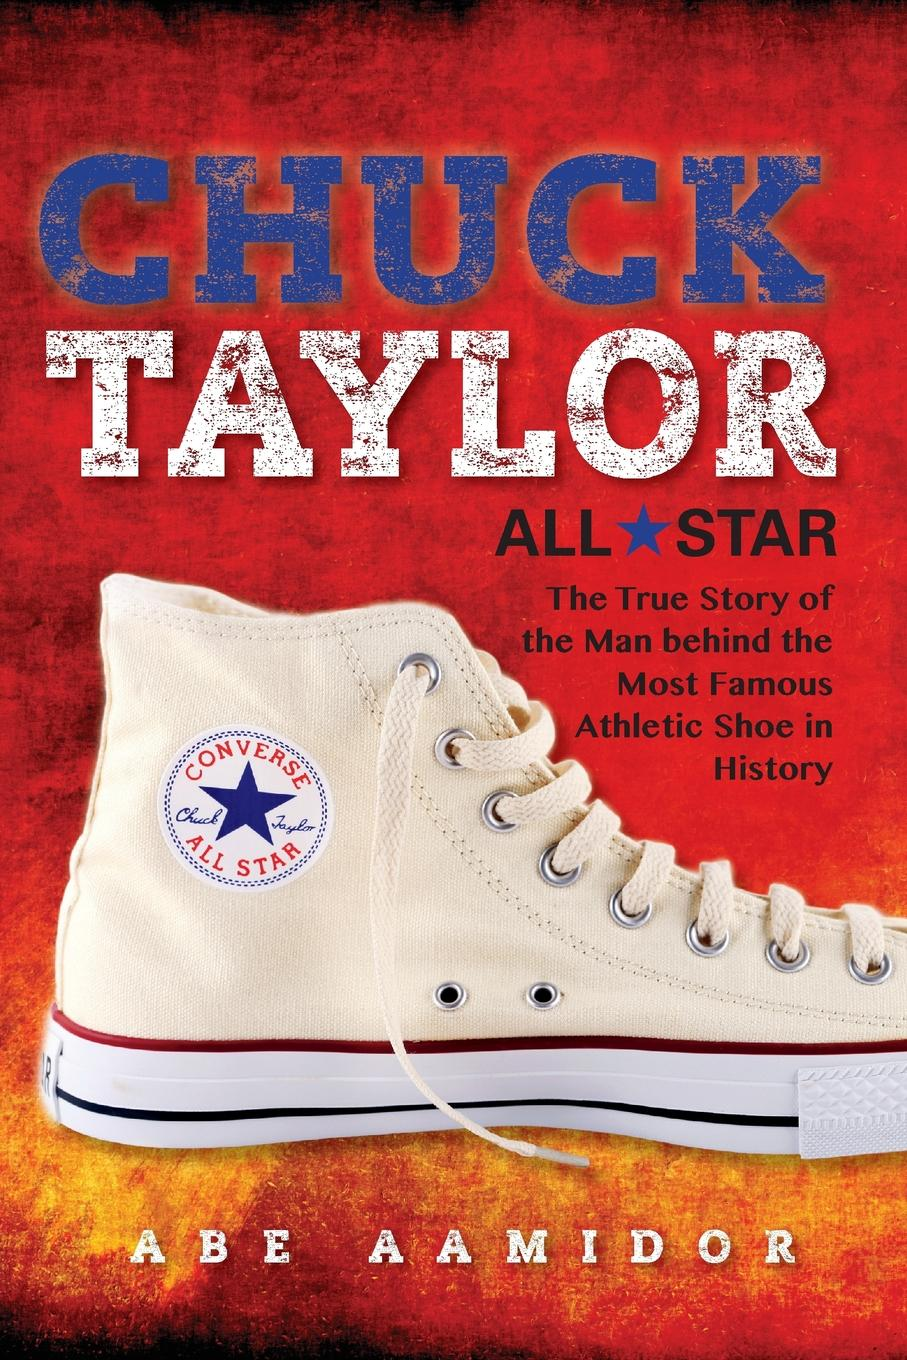 Abraham Aamidor Chuck Taylor, All Star. The True Story of the Man Behind Most Famous Athletic Shoe in History (Commemorative)